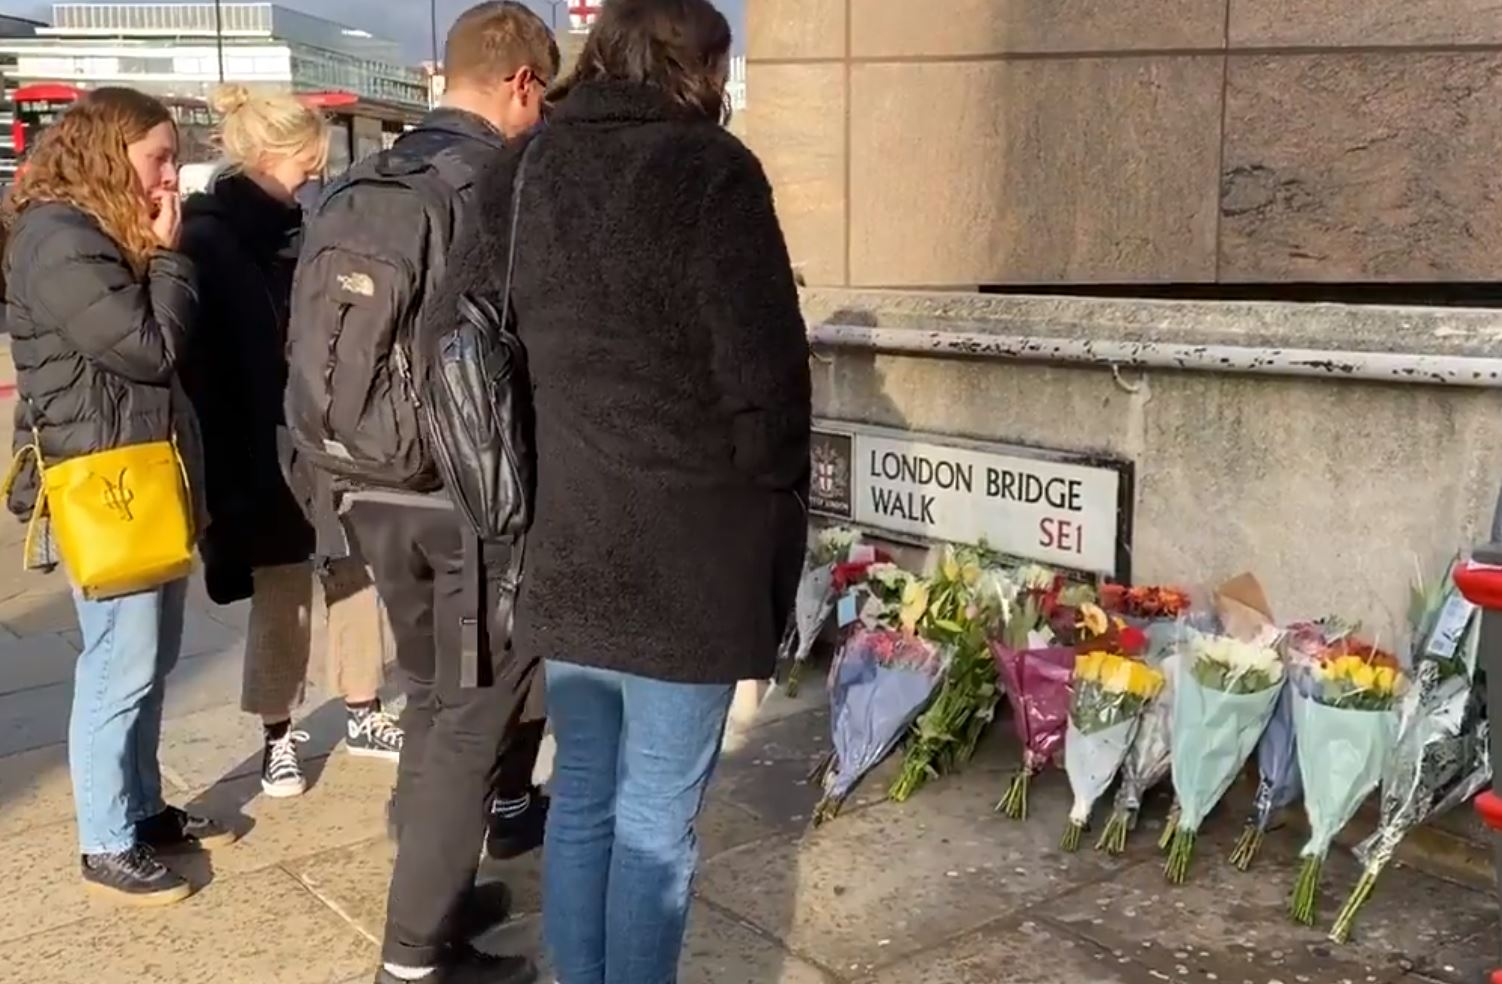 People have already laid flowers as near to the London Bridge attack site as is possible at this time